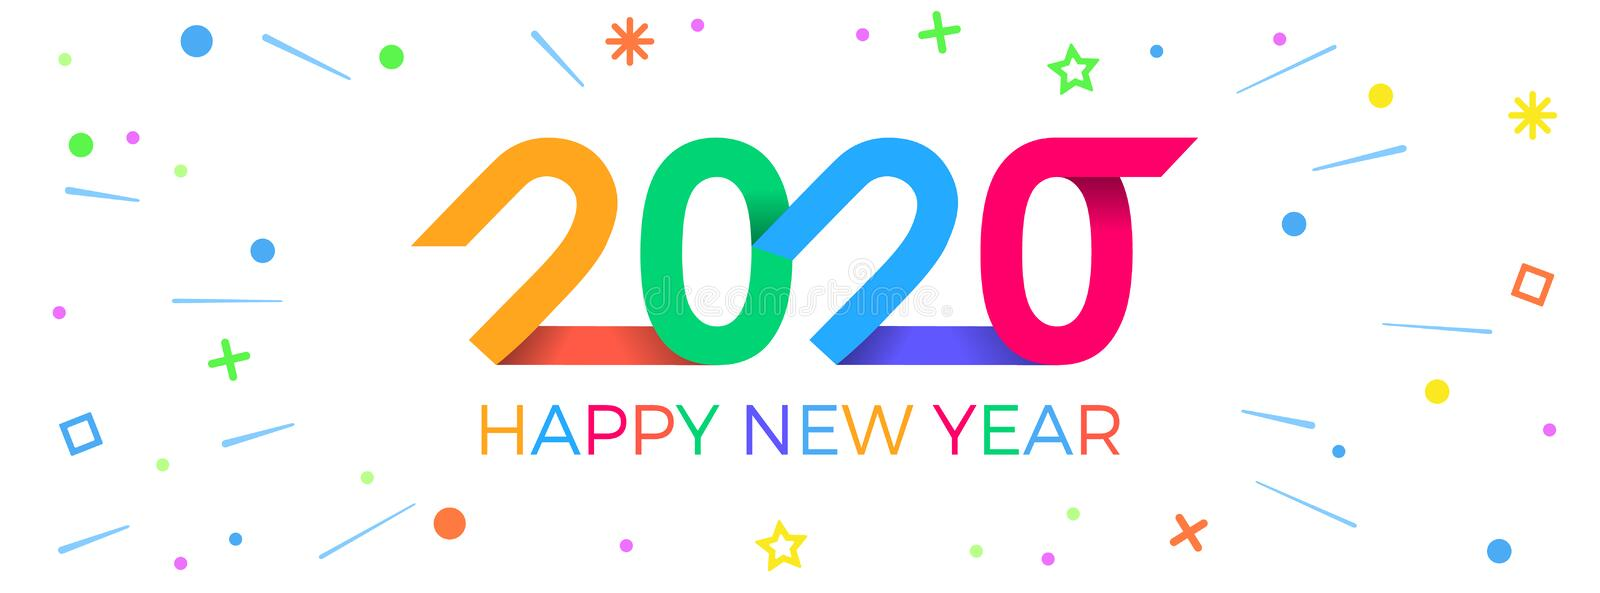 2020 Happy New Year. Paper Memphis geometric bright style for holidays flyers, greetings, invitations, Happy New Year or royalty free stock photos